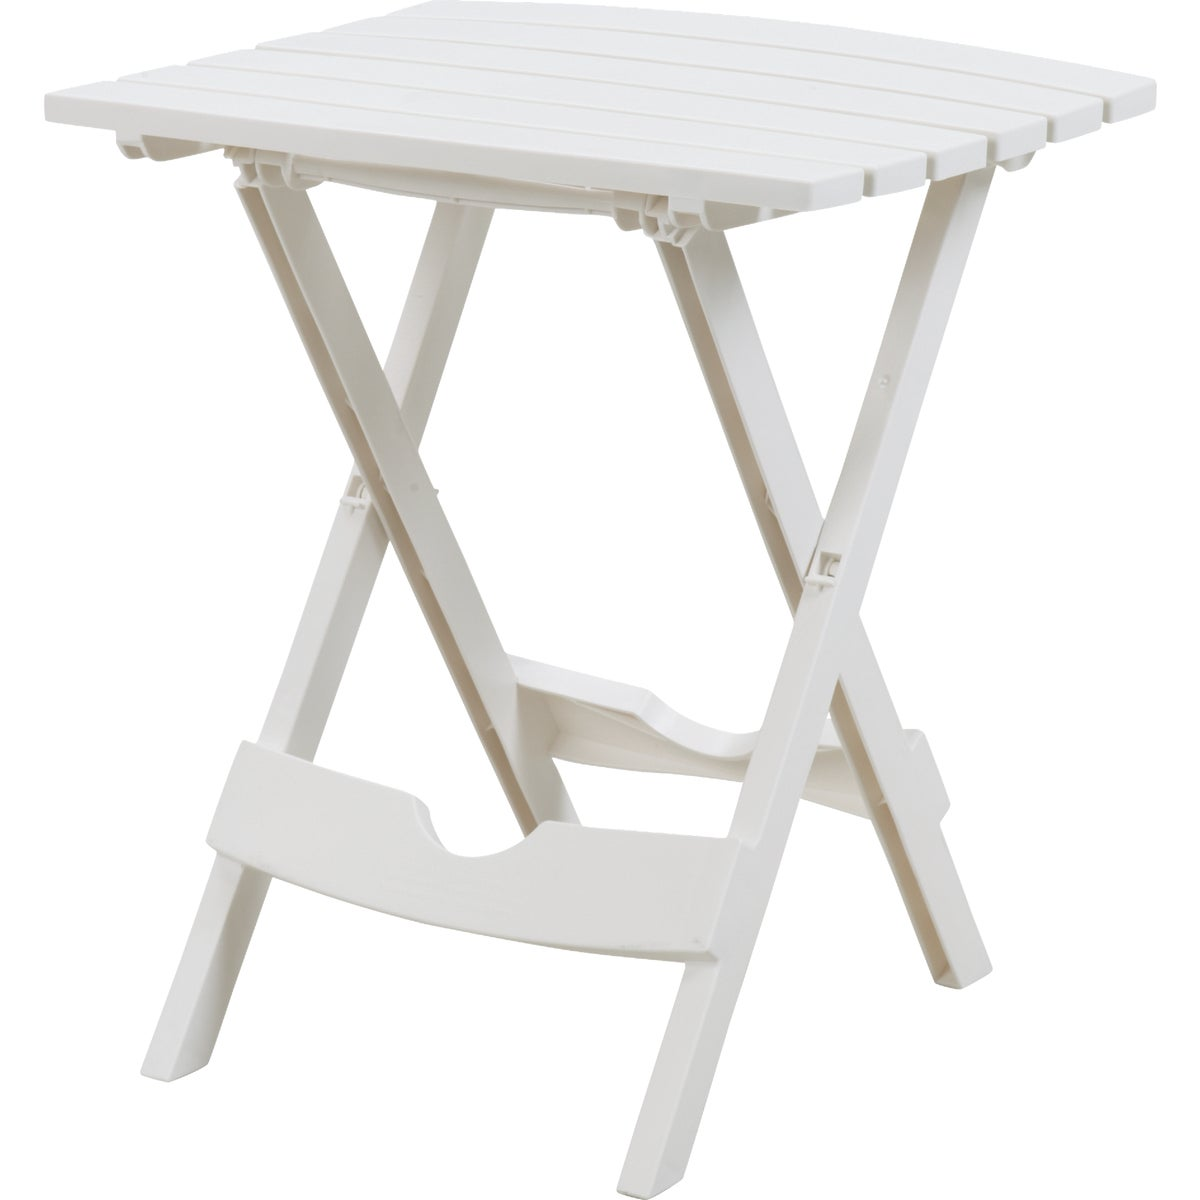 WHITE QUIK FOLD TABLE - 8500-48-3731 by Adams Mfg Patio Furn